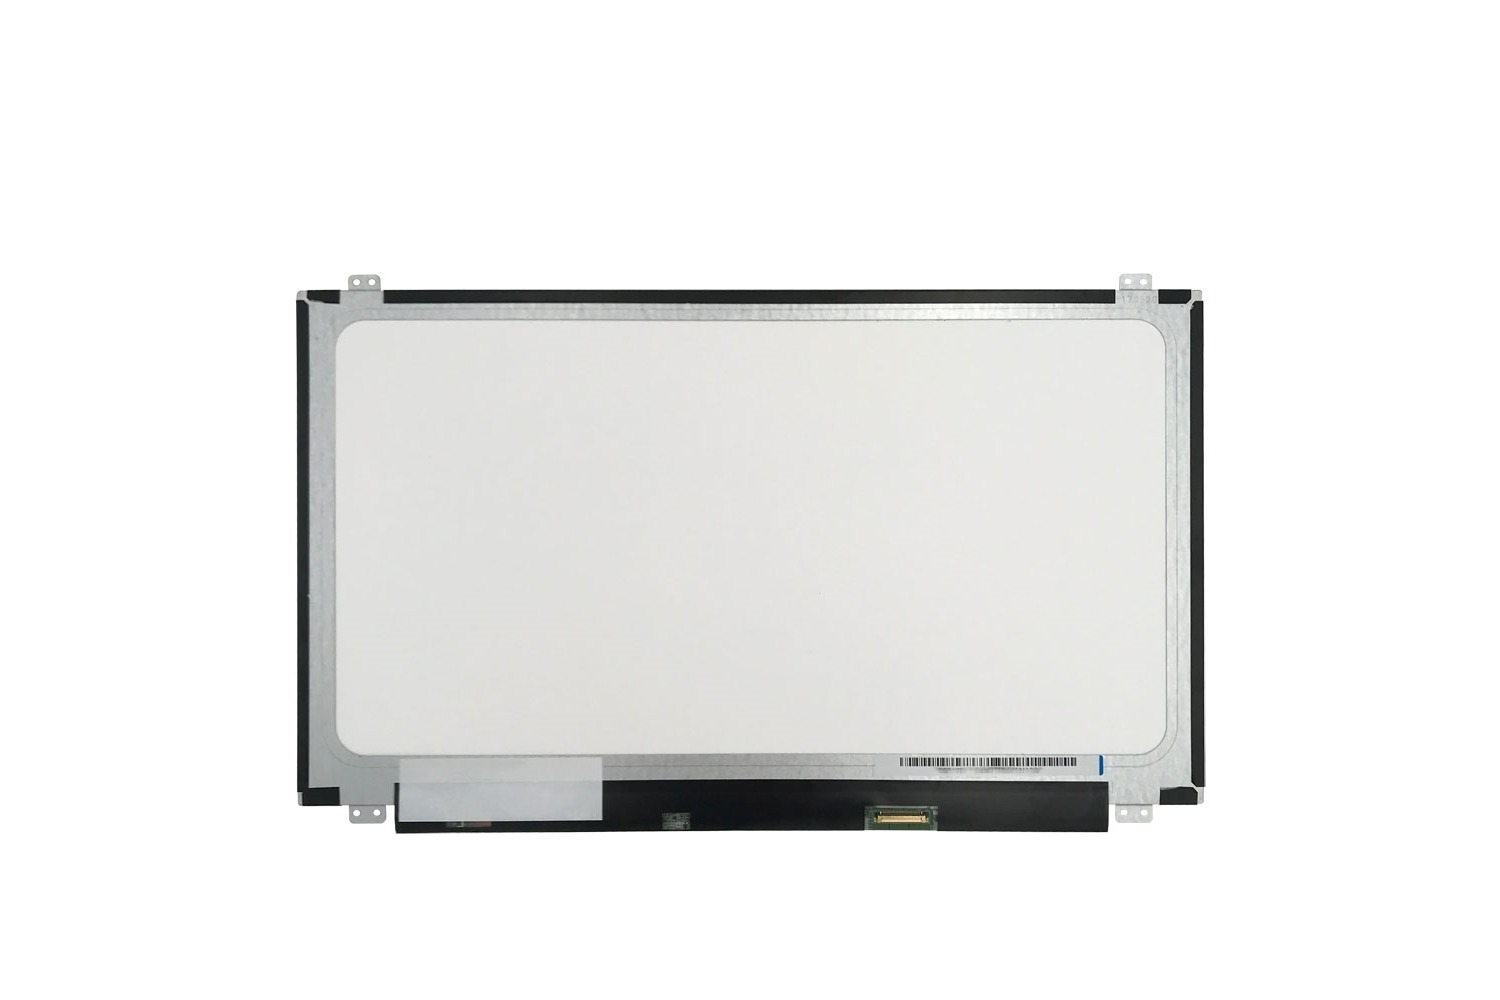 Display Panel Screen Samsung LTN156AT39-301 TN 15.6 16:9 1366x768